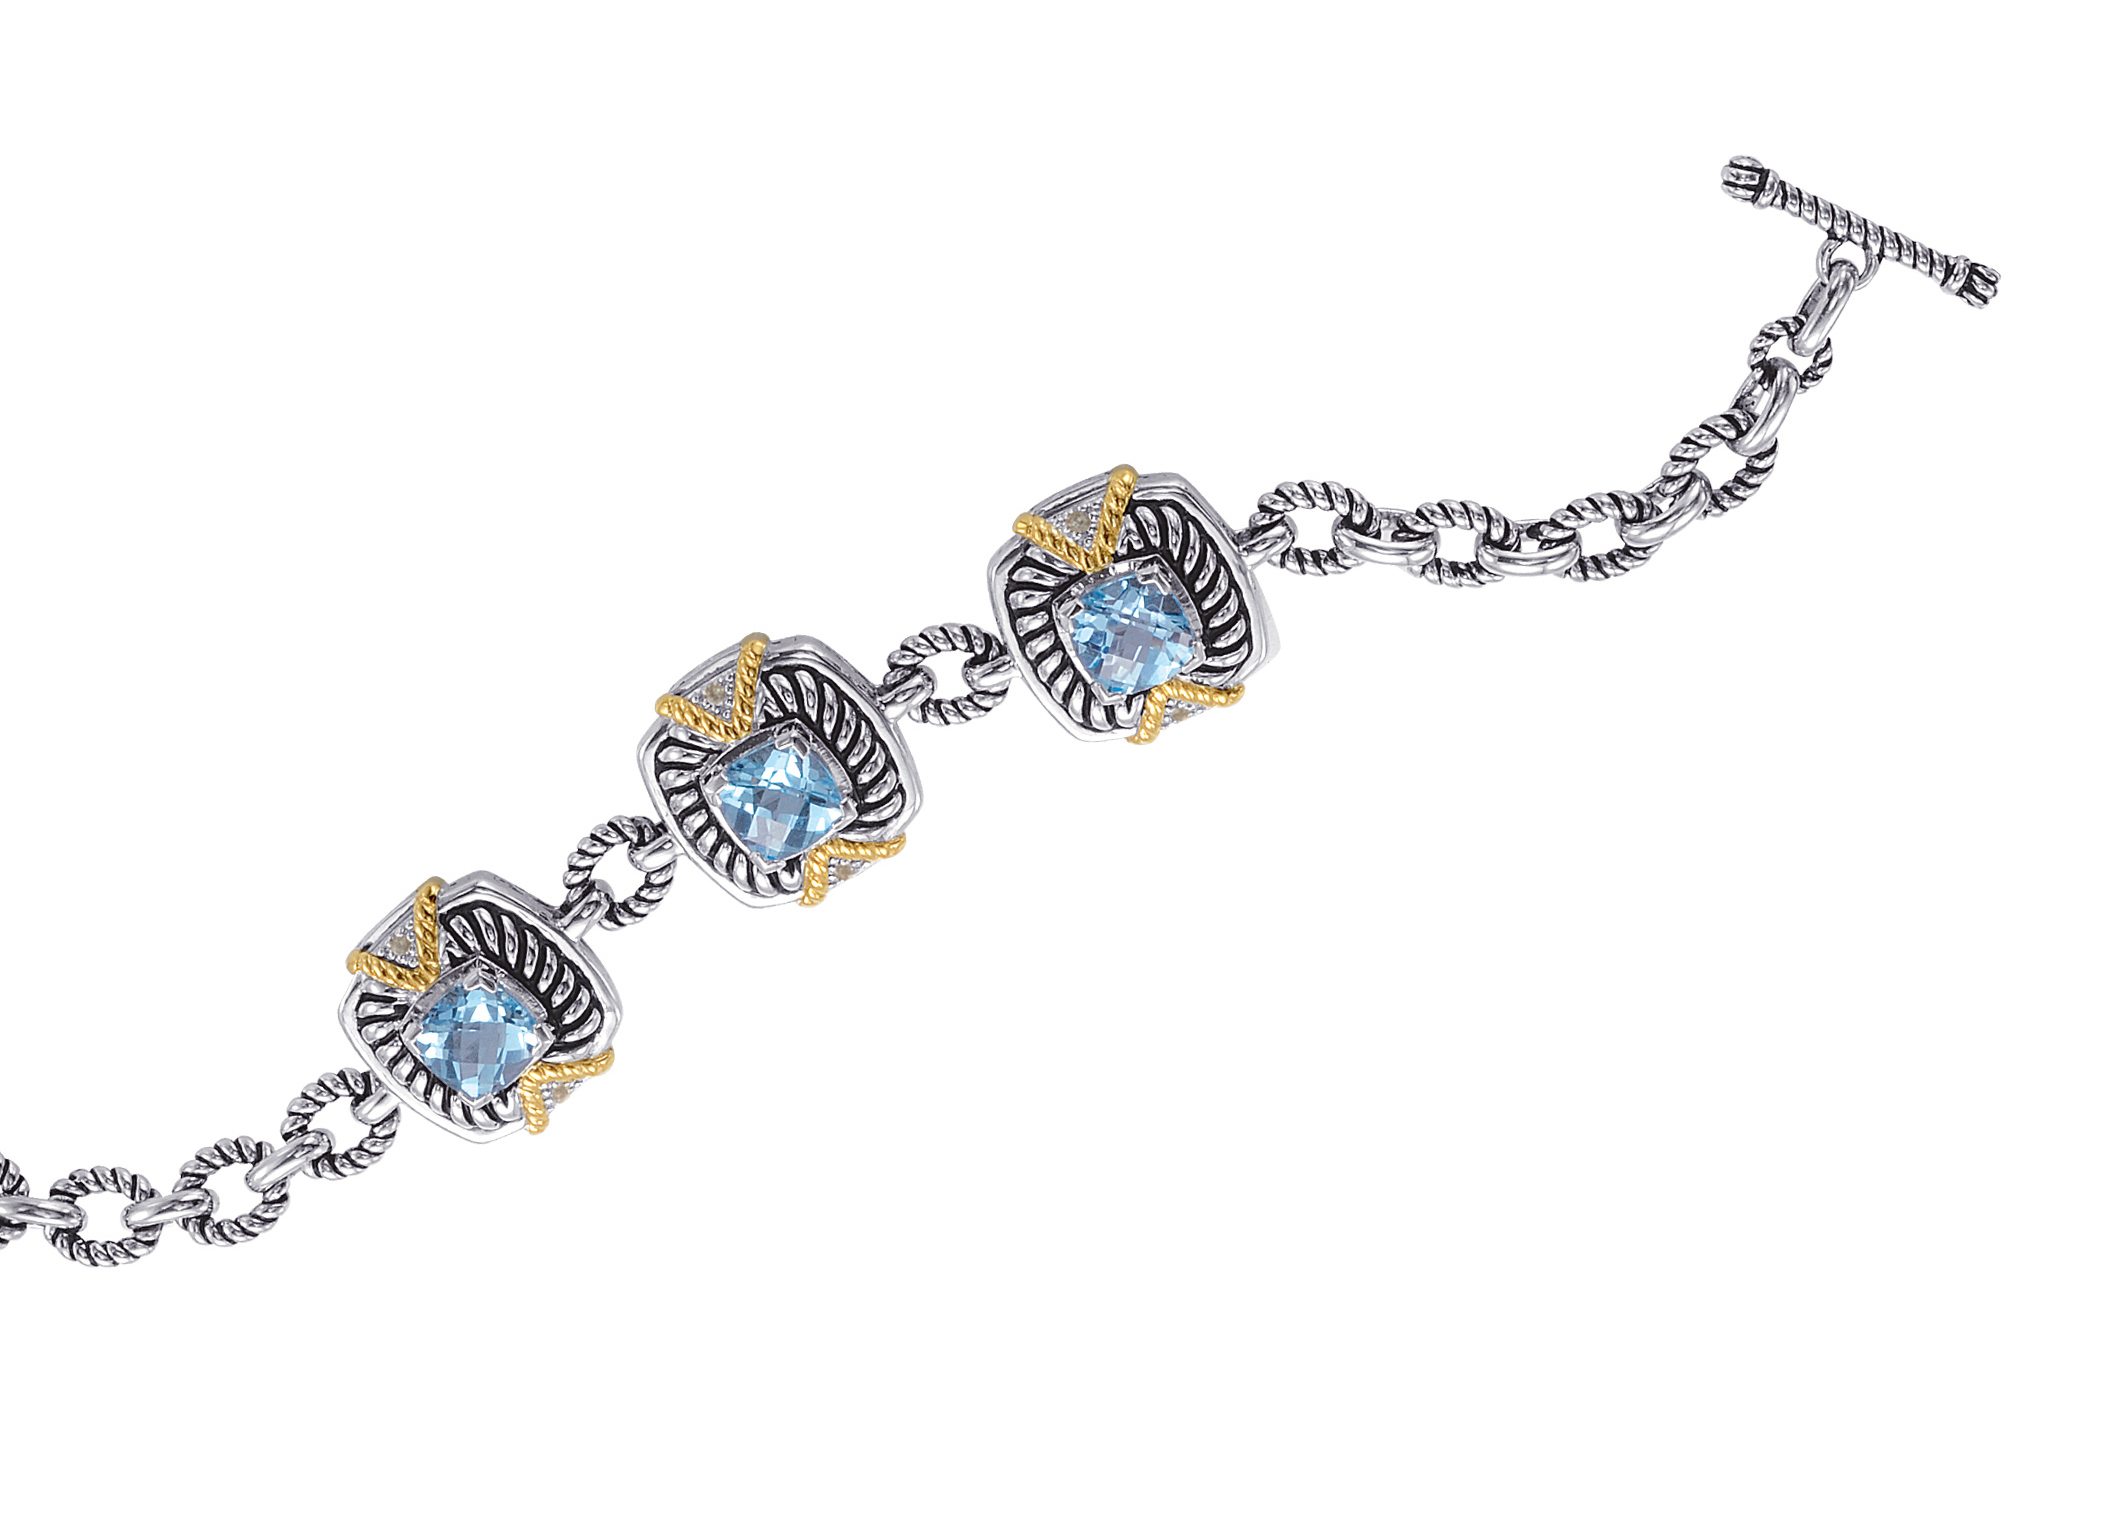 Jewelry - Alesandro Menegati 14K Accented Sterling Silver Bracelet with Blue and White Topaz.